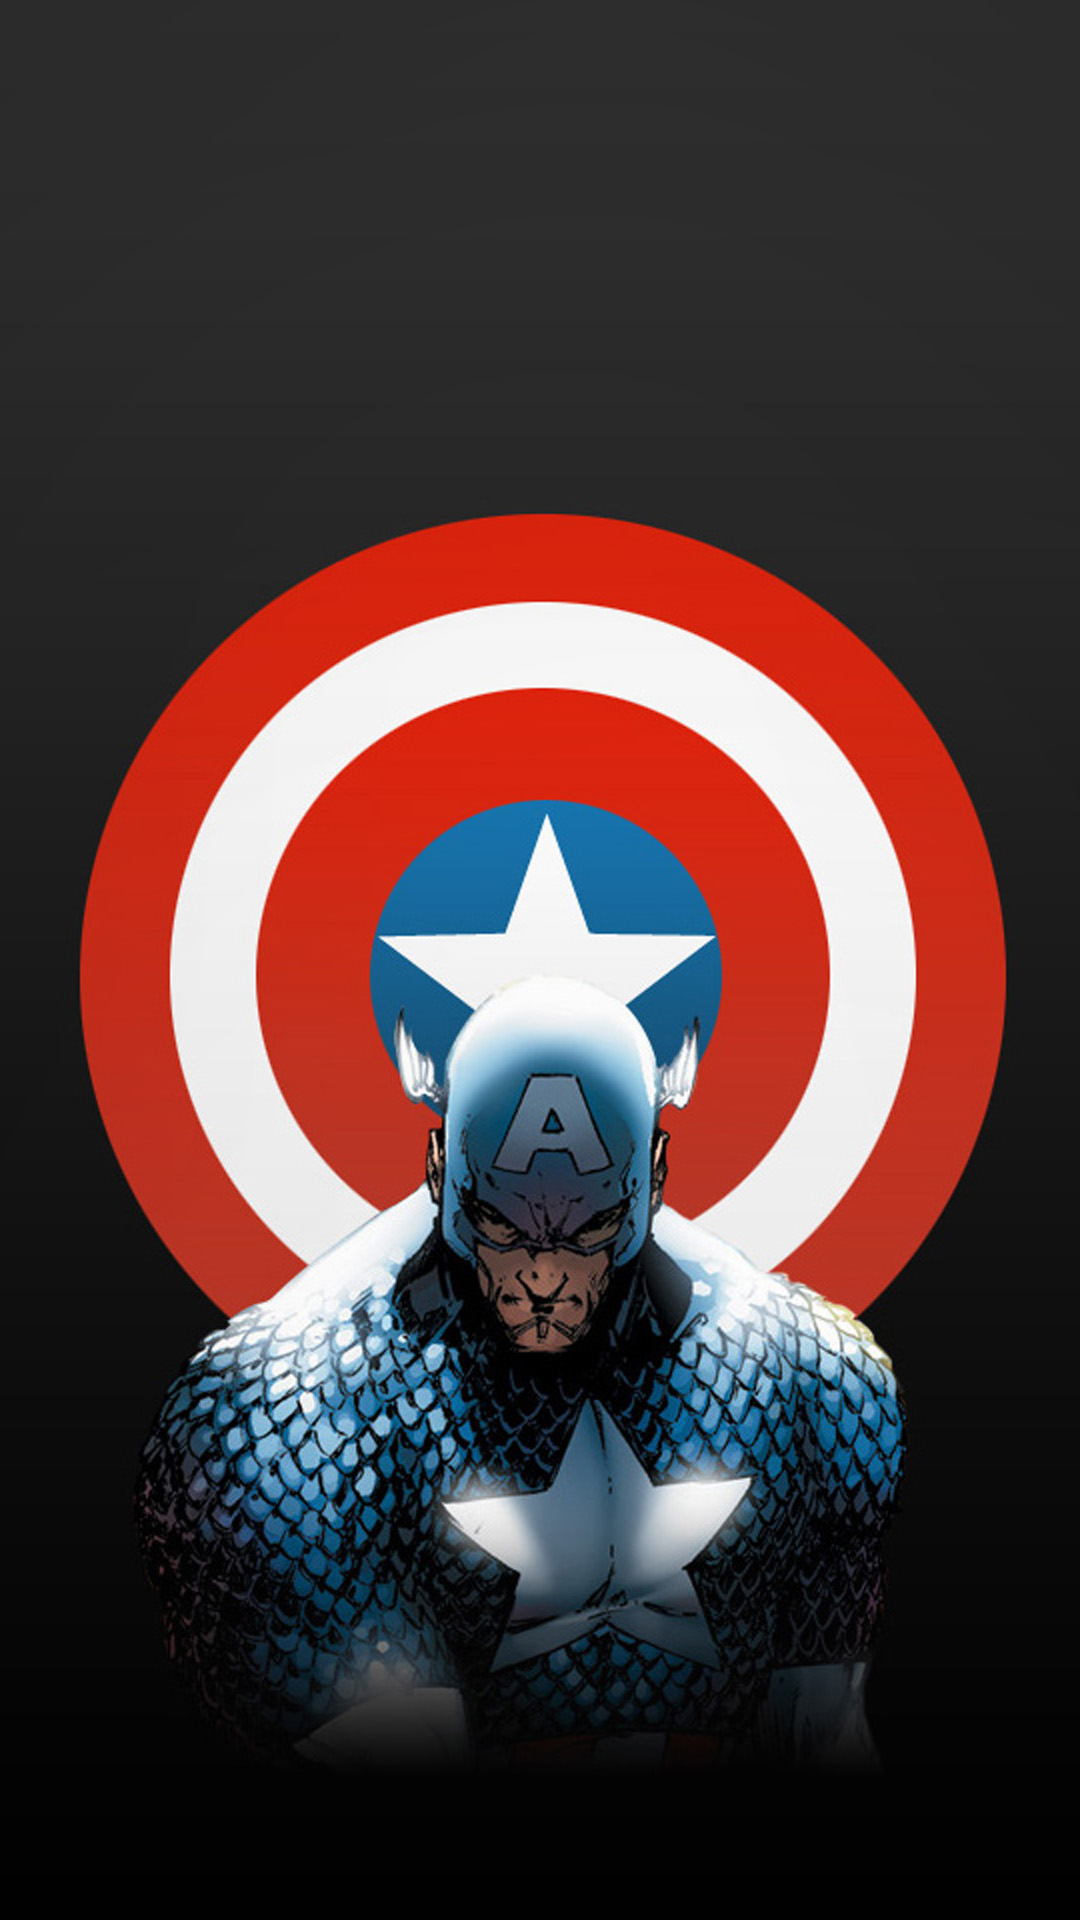 Inspirational Wallpapers Hd Free Download Captain America Iphone Images Pixelstalk Net